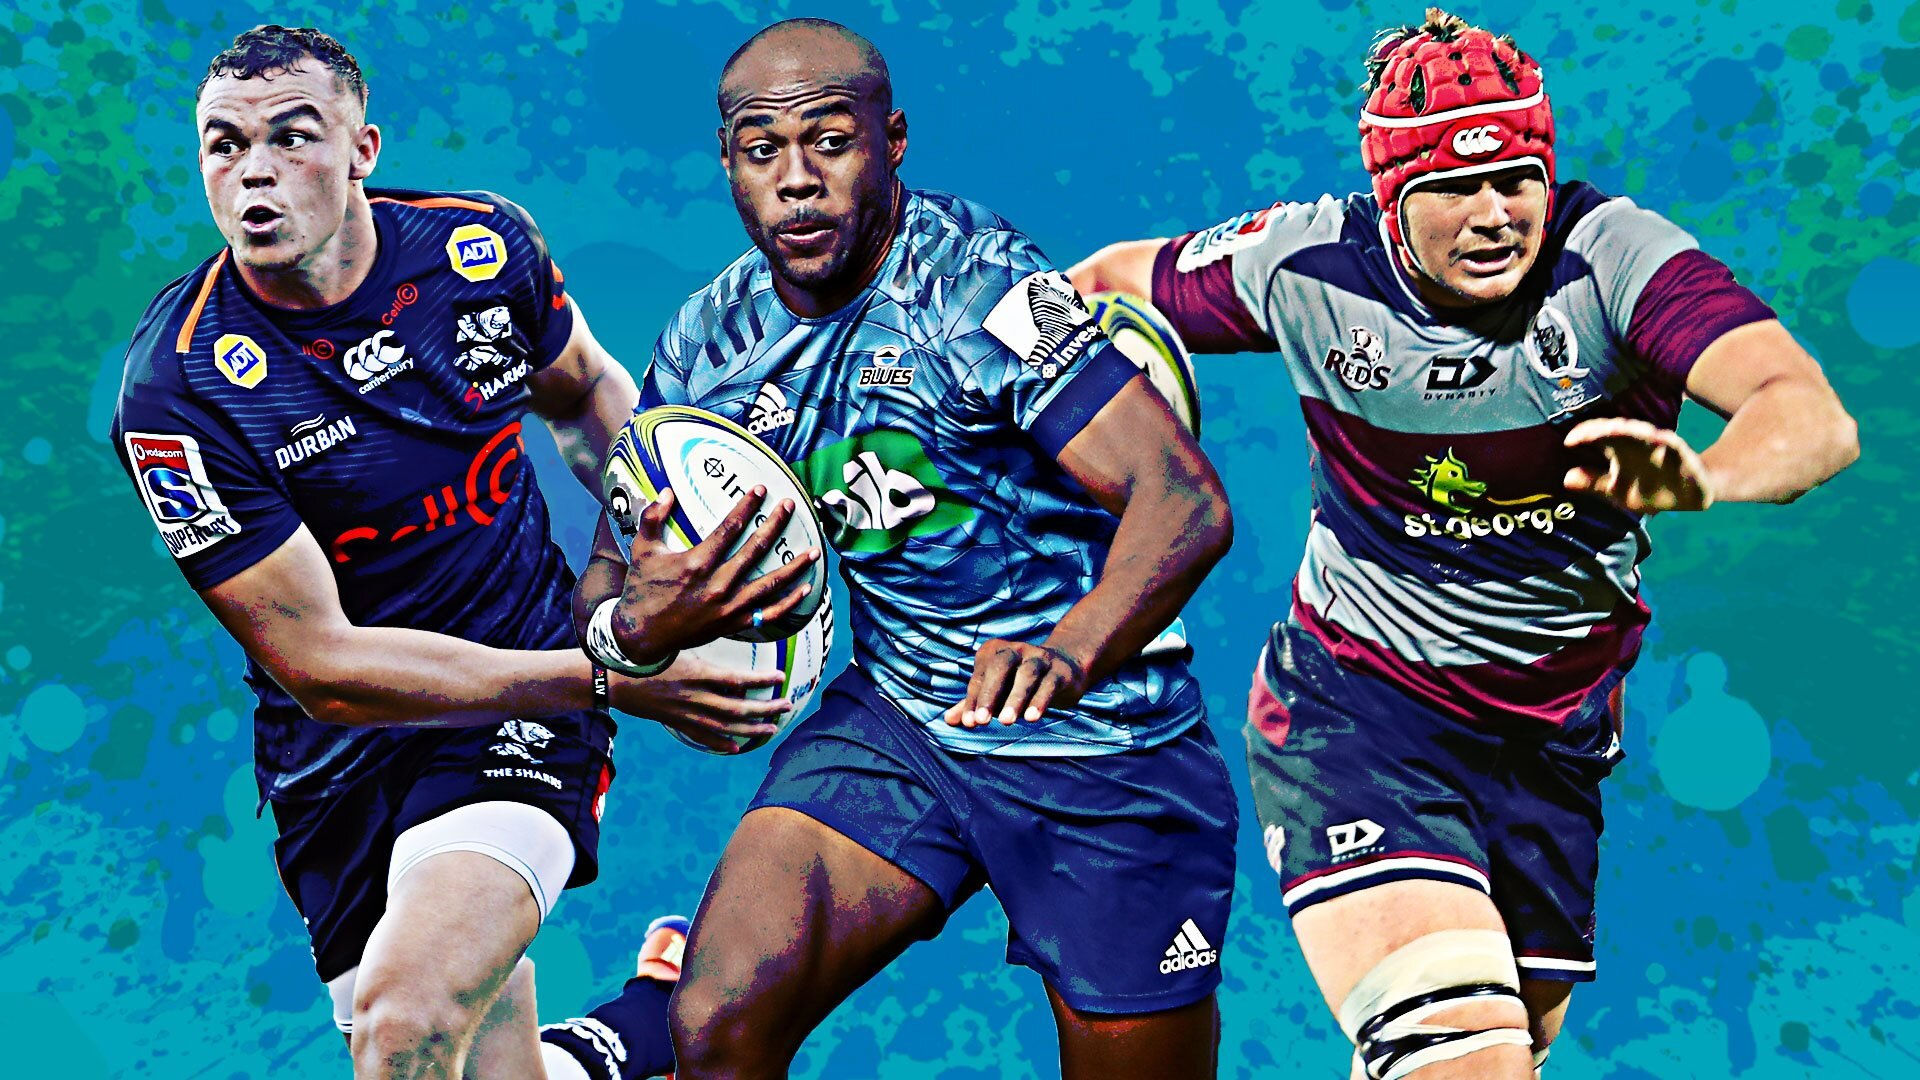 The RugbyPass Super Rugby Mid-Season Awards